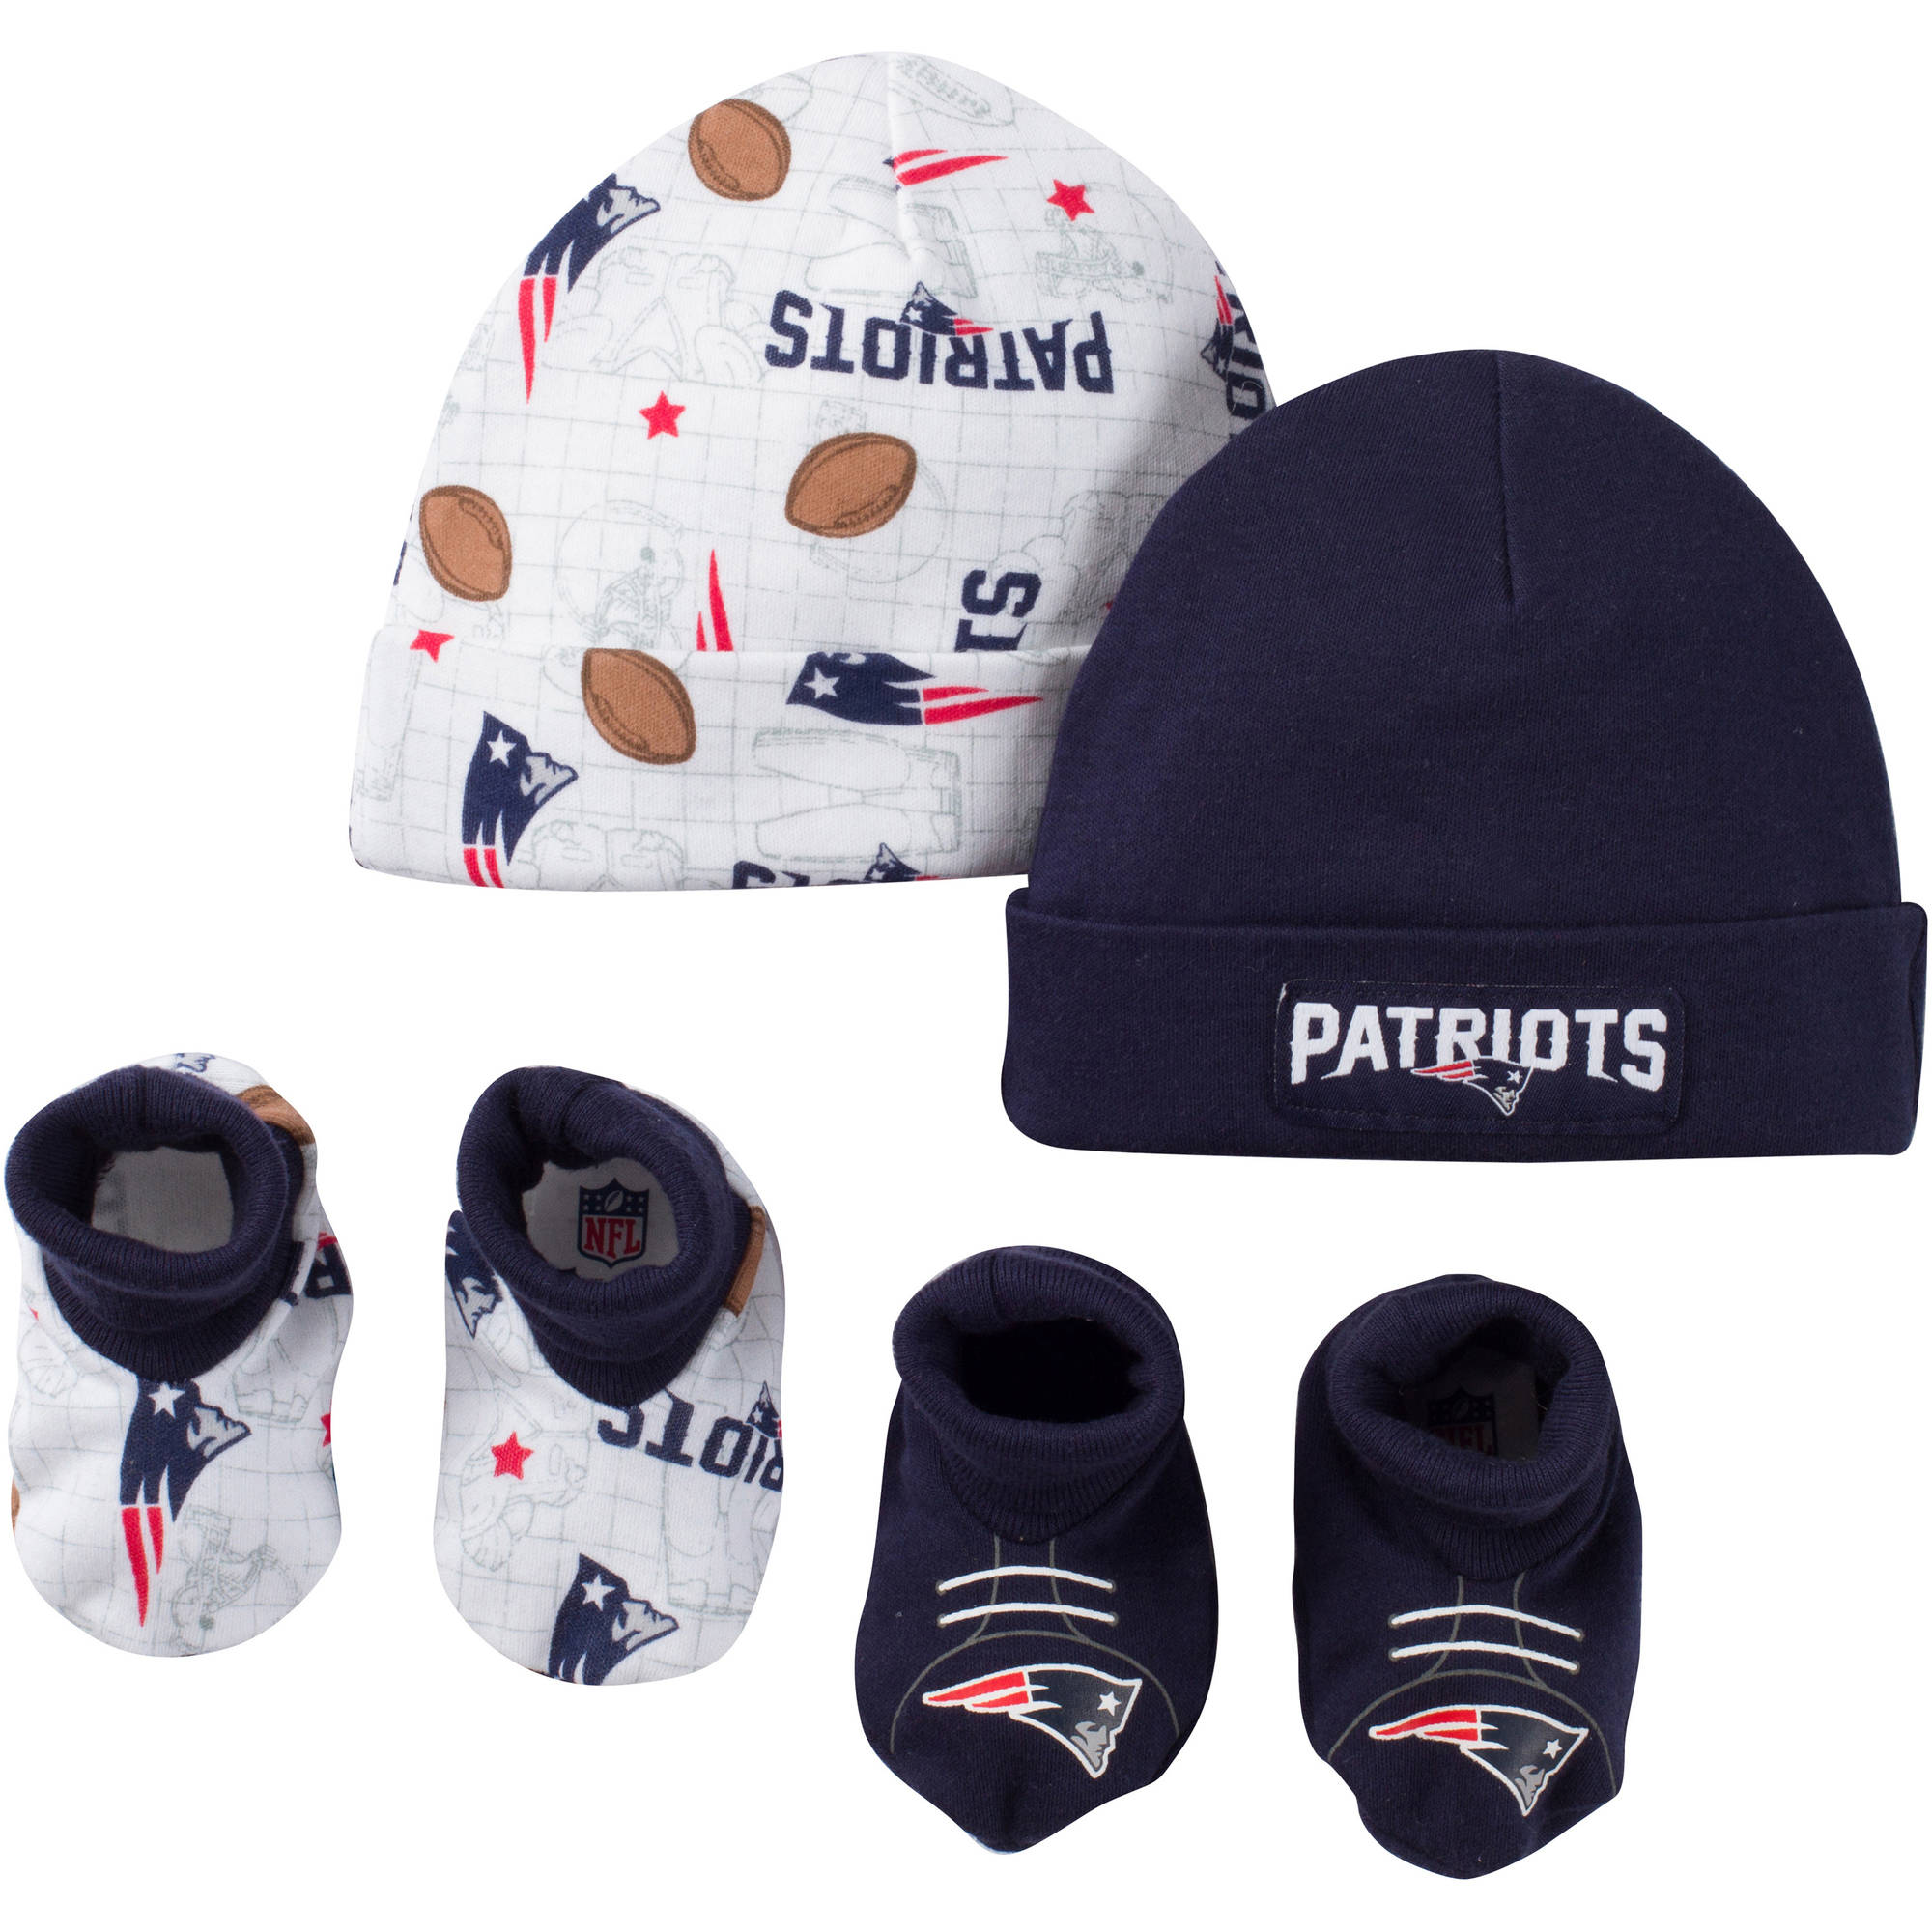 NFL New England Patriots Baby Boys Accessory Set, 2 Caps and 2 Booties, 4-Piece